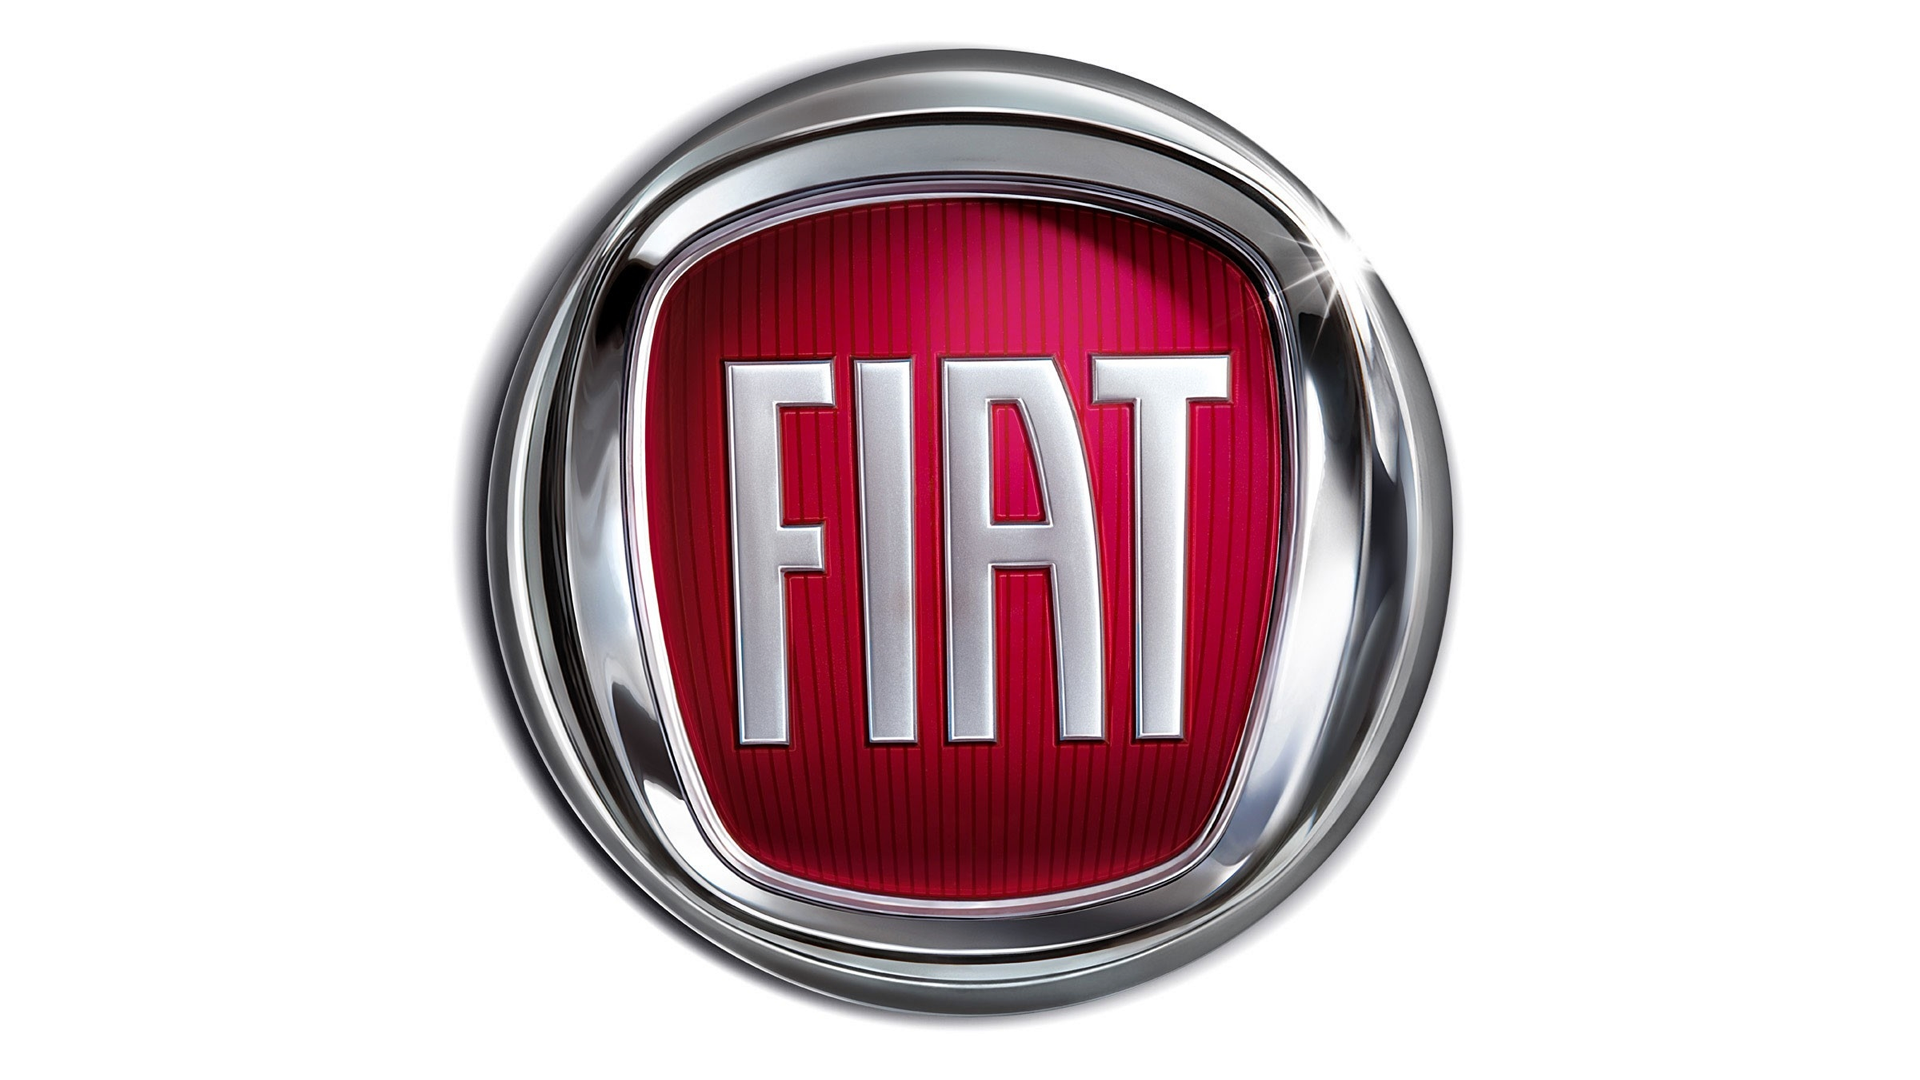 kisspng-fiat-500-car-fiat-automobiles-chrysler-fiat-logo-png-transparent-image-5a78cd9b981645.670927211517866395623